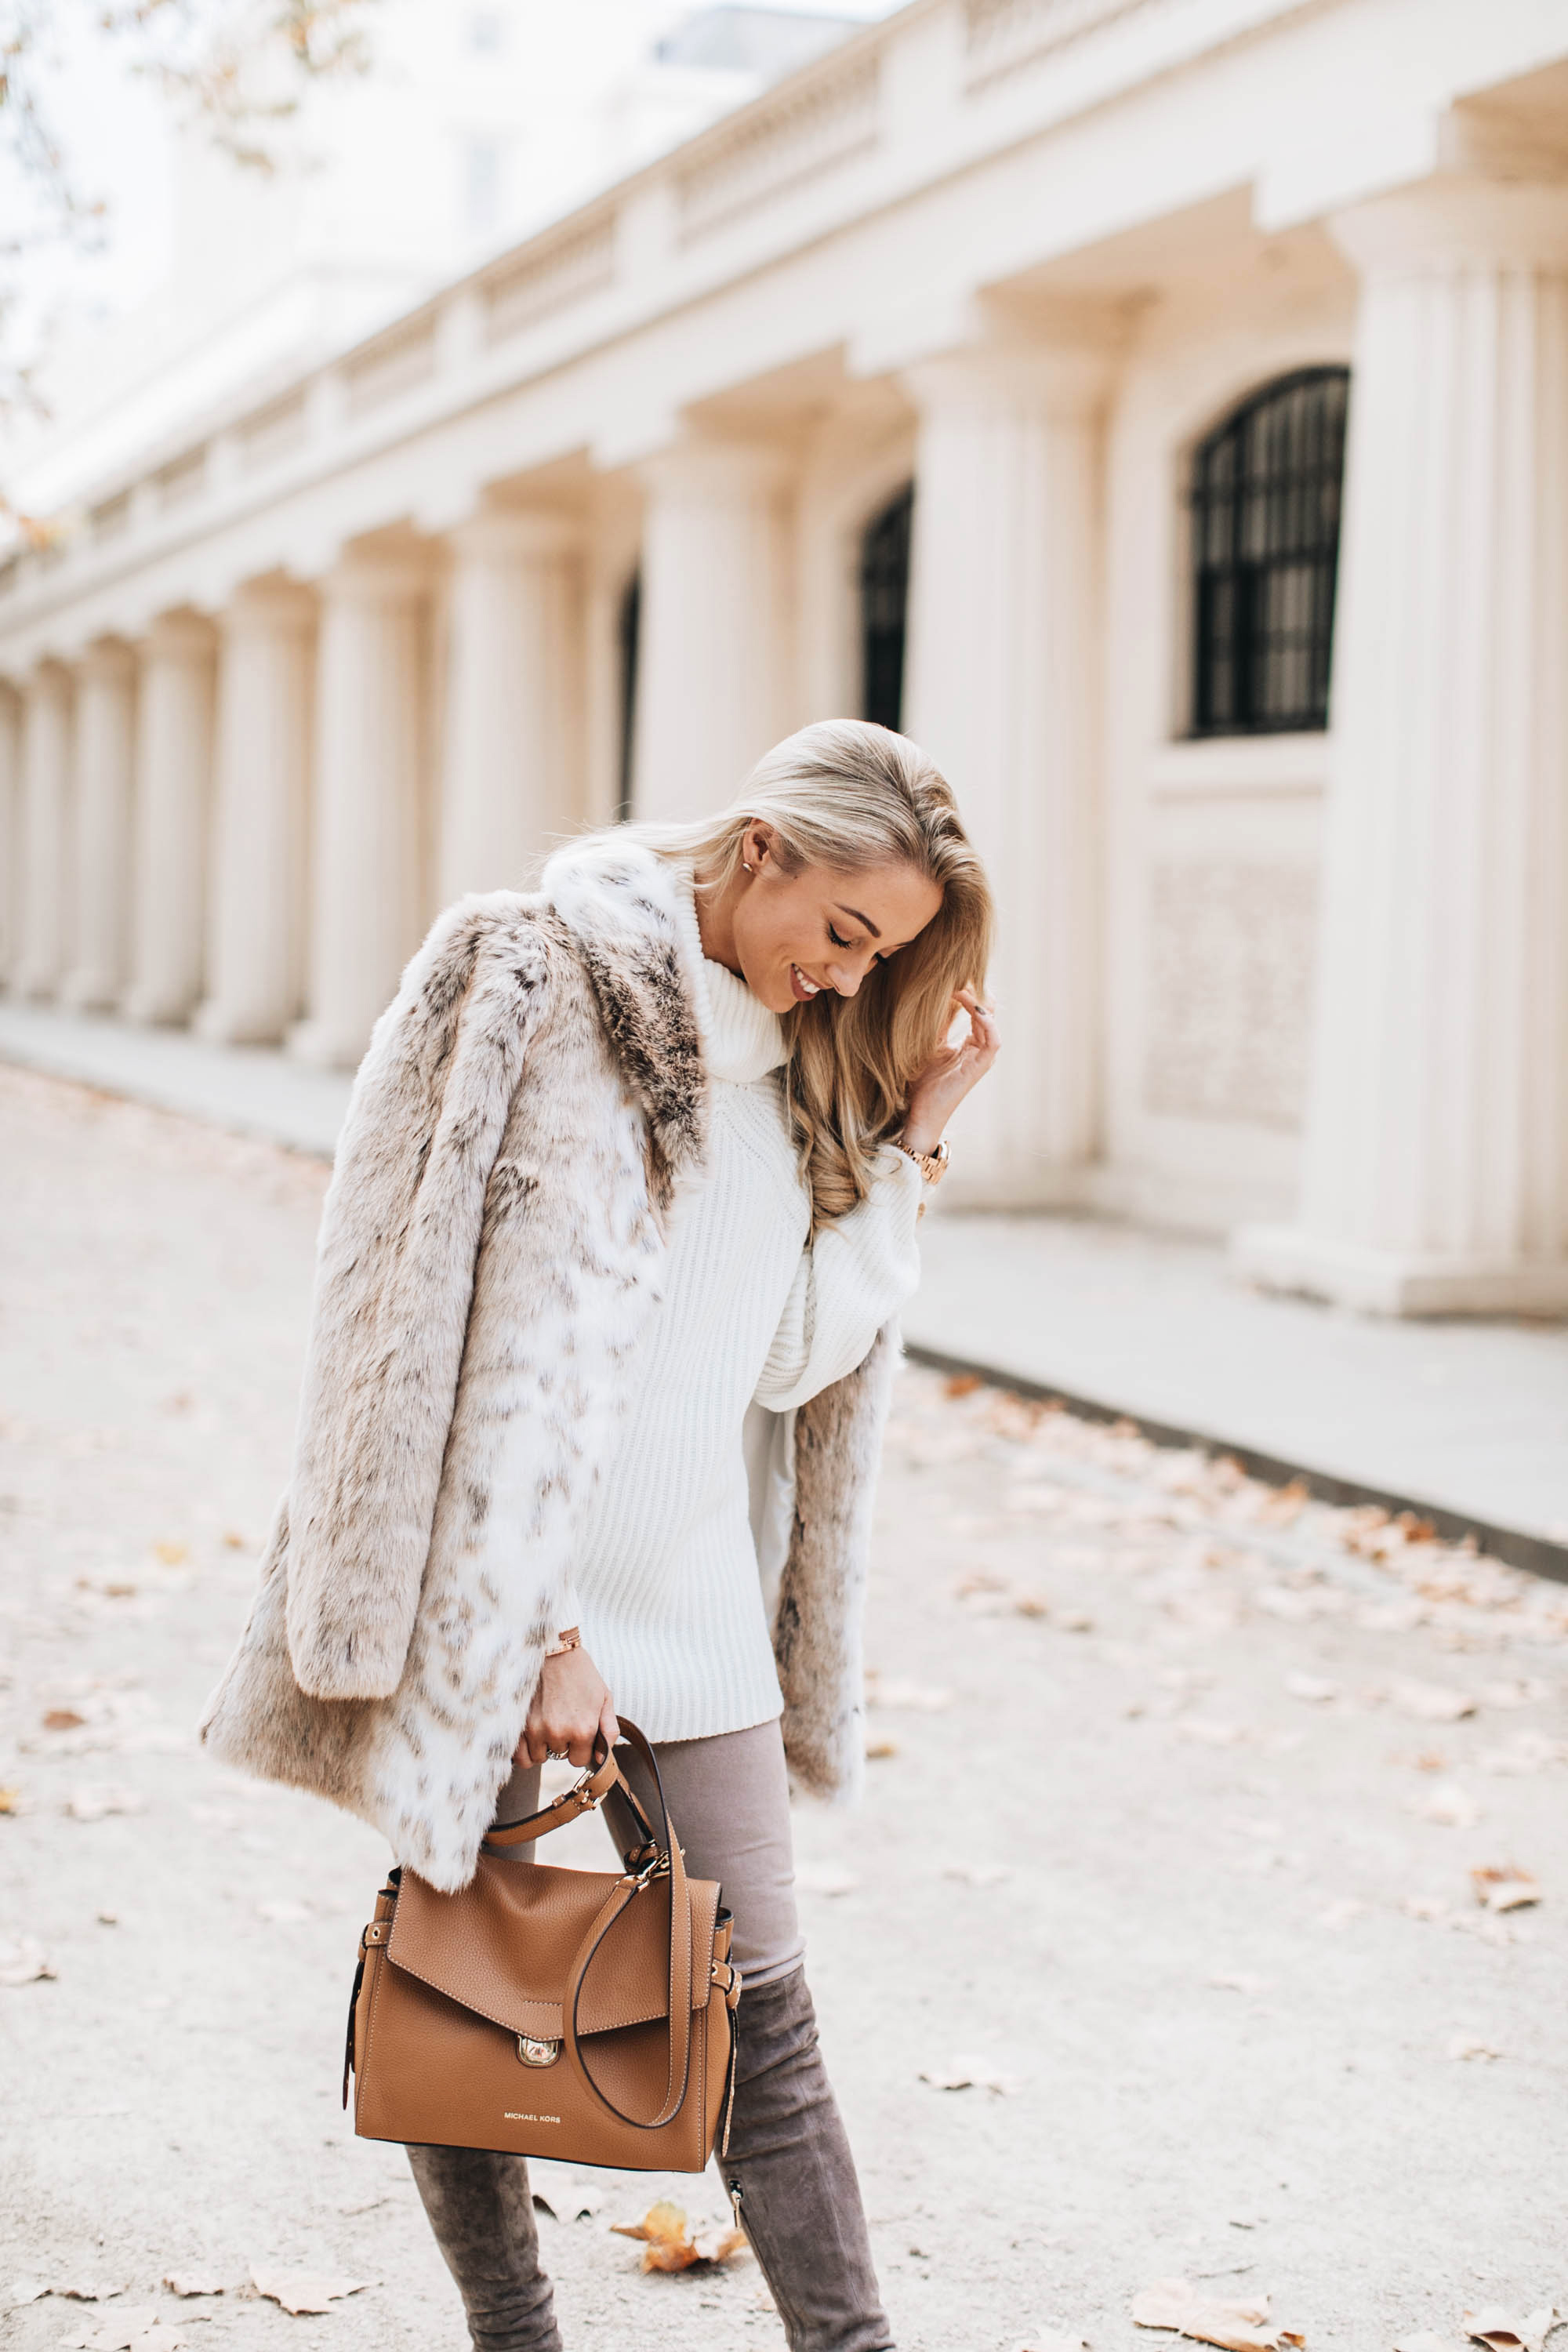 3 Accessories To Invest In This Winter